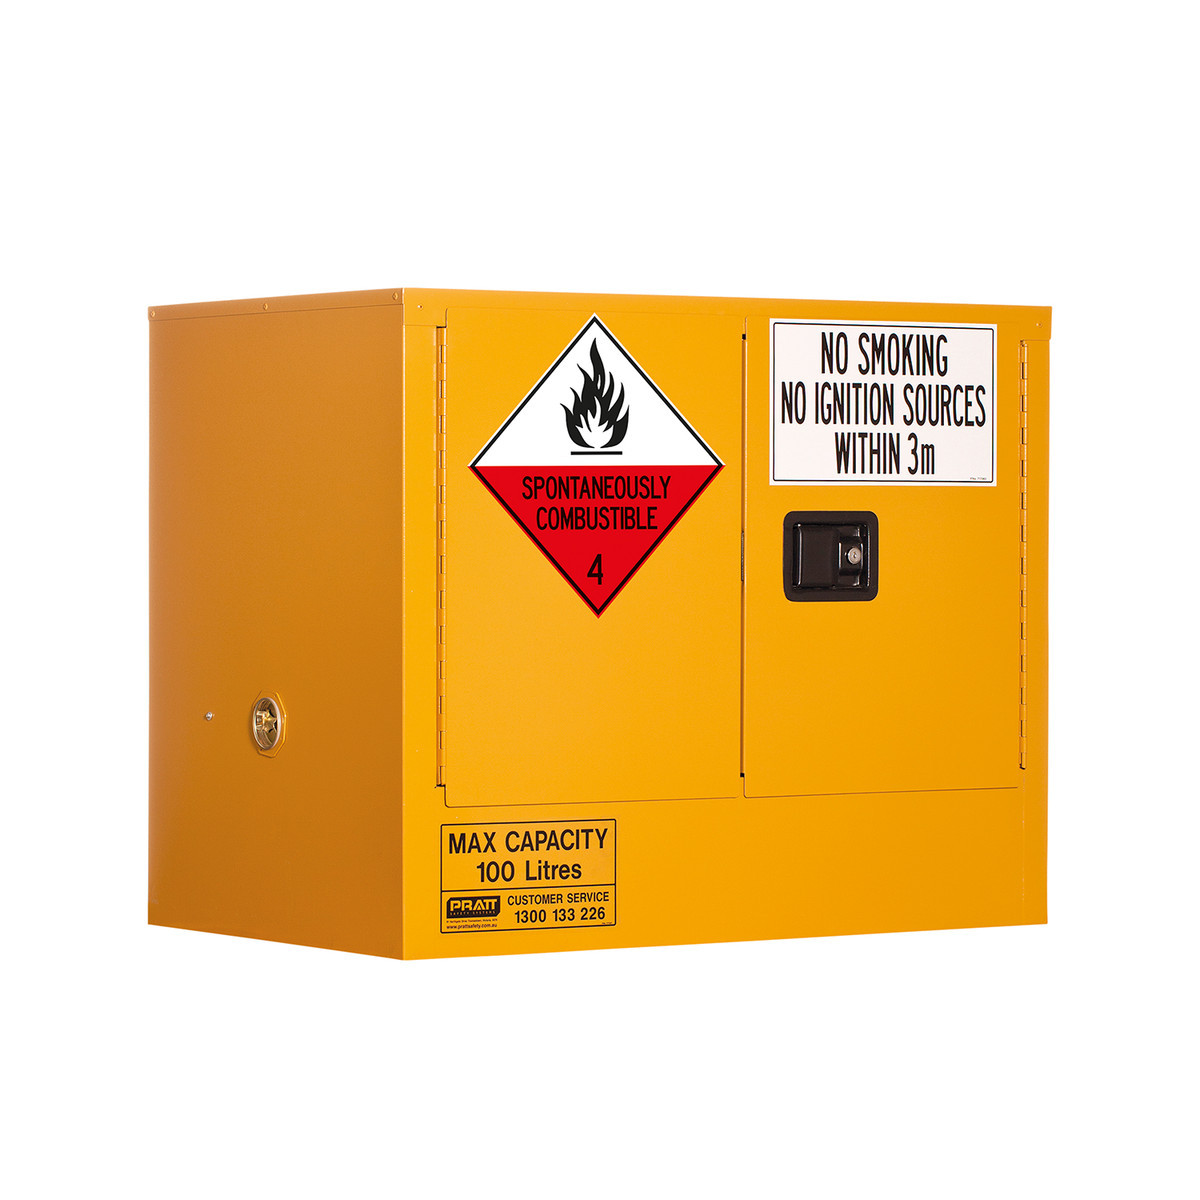 Class 4 Dangerous Goods Storage Cabinet 100 Liters - 2 Door, 1 Shelf